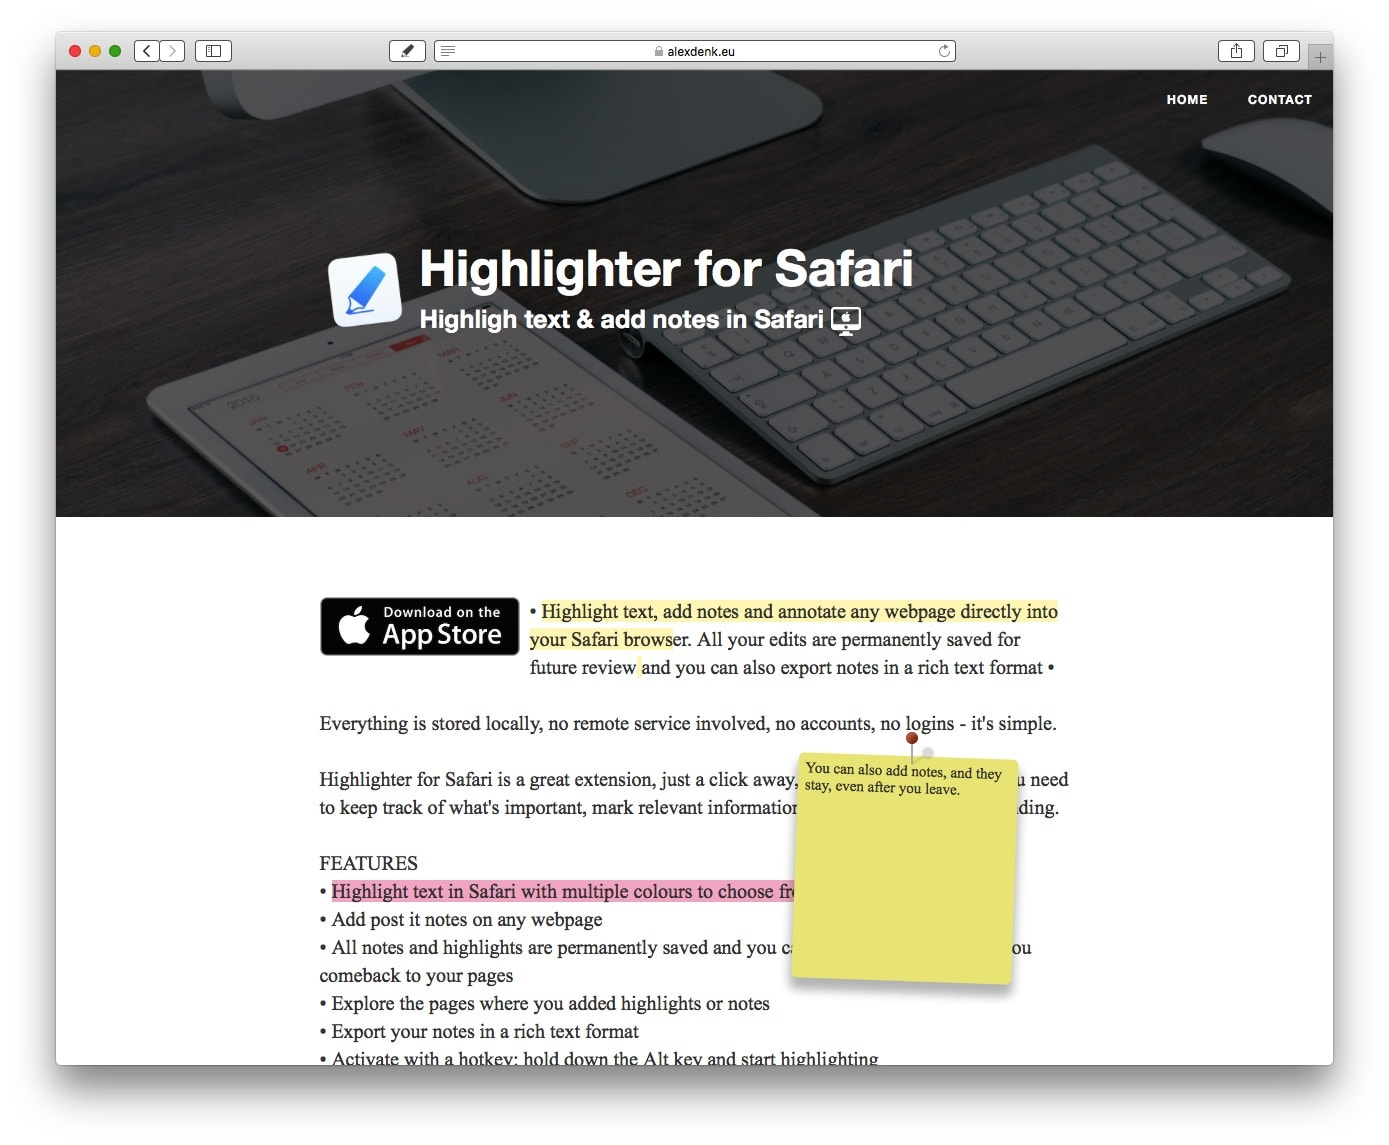 With Highlighter for Safari, highlighting a web page is easy and effective.